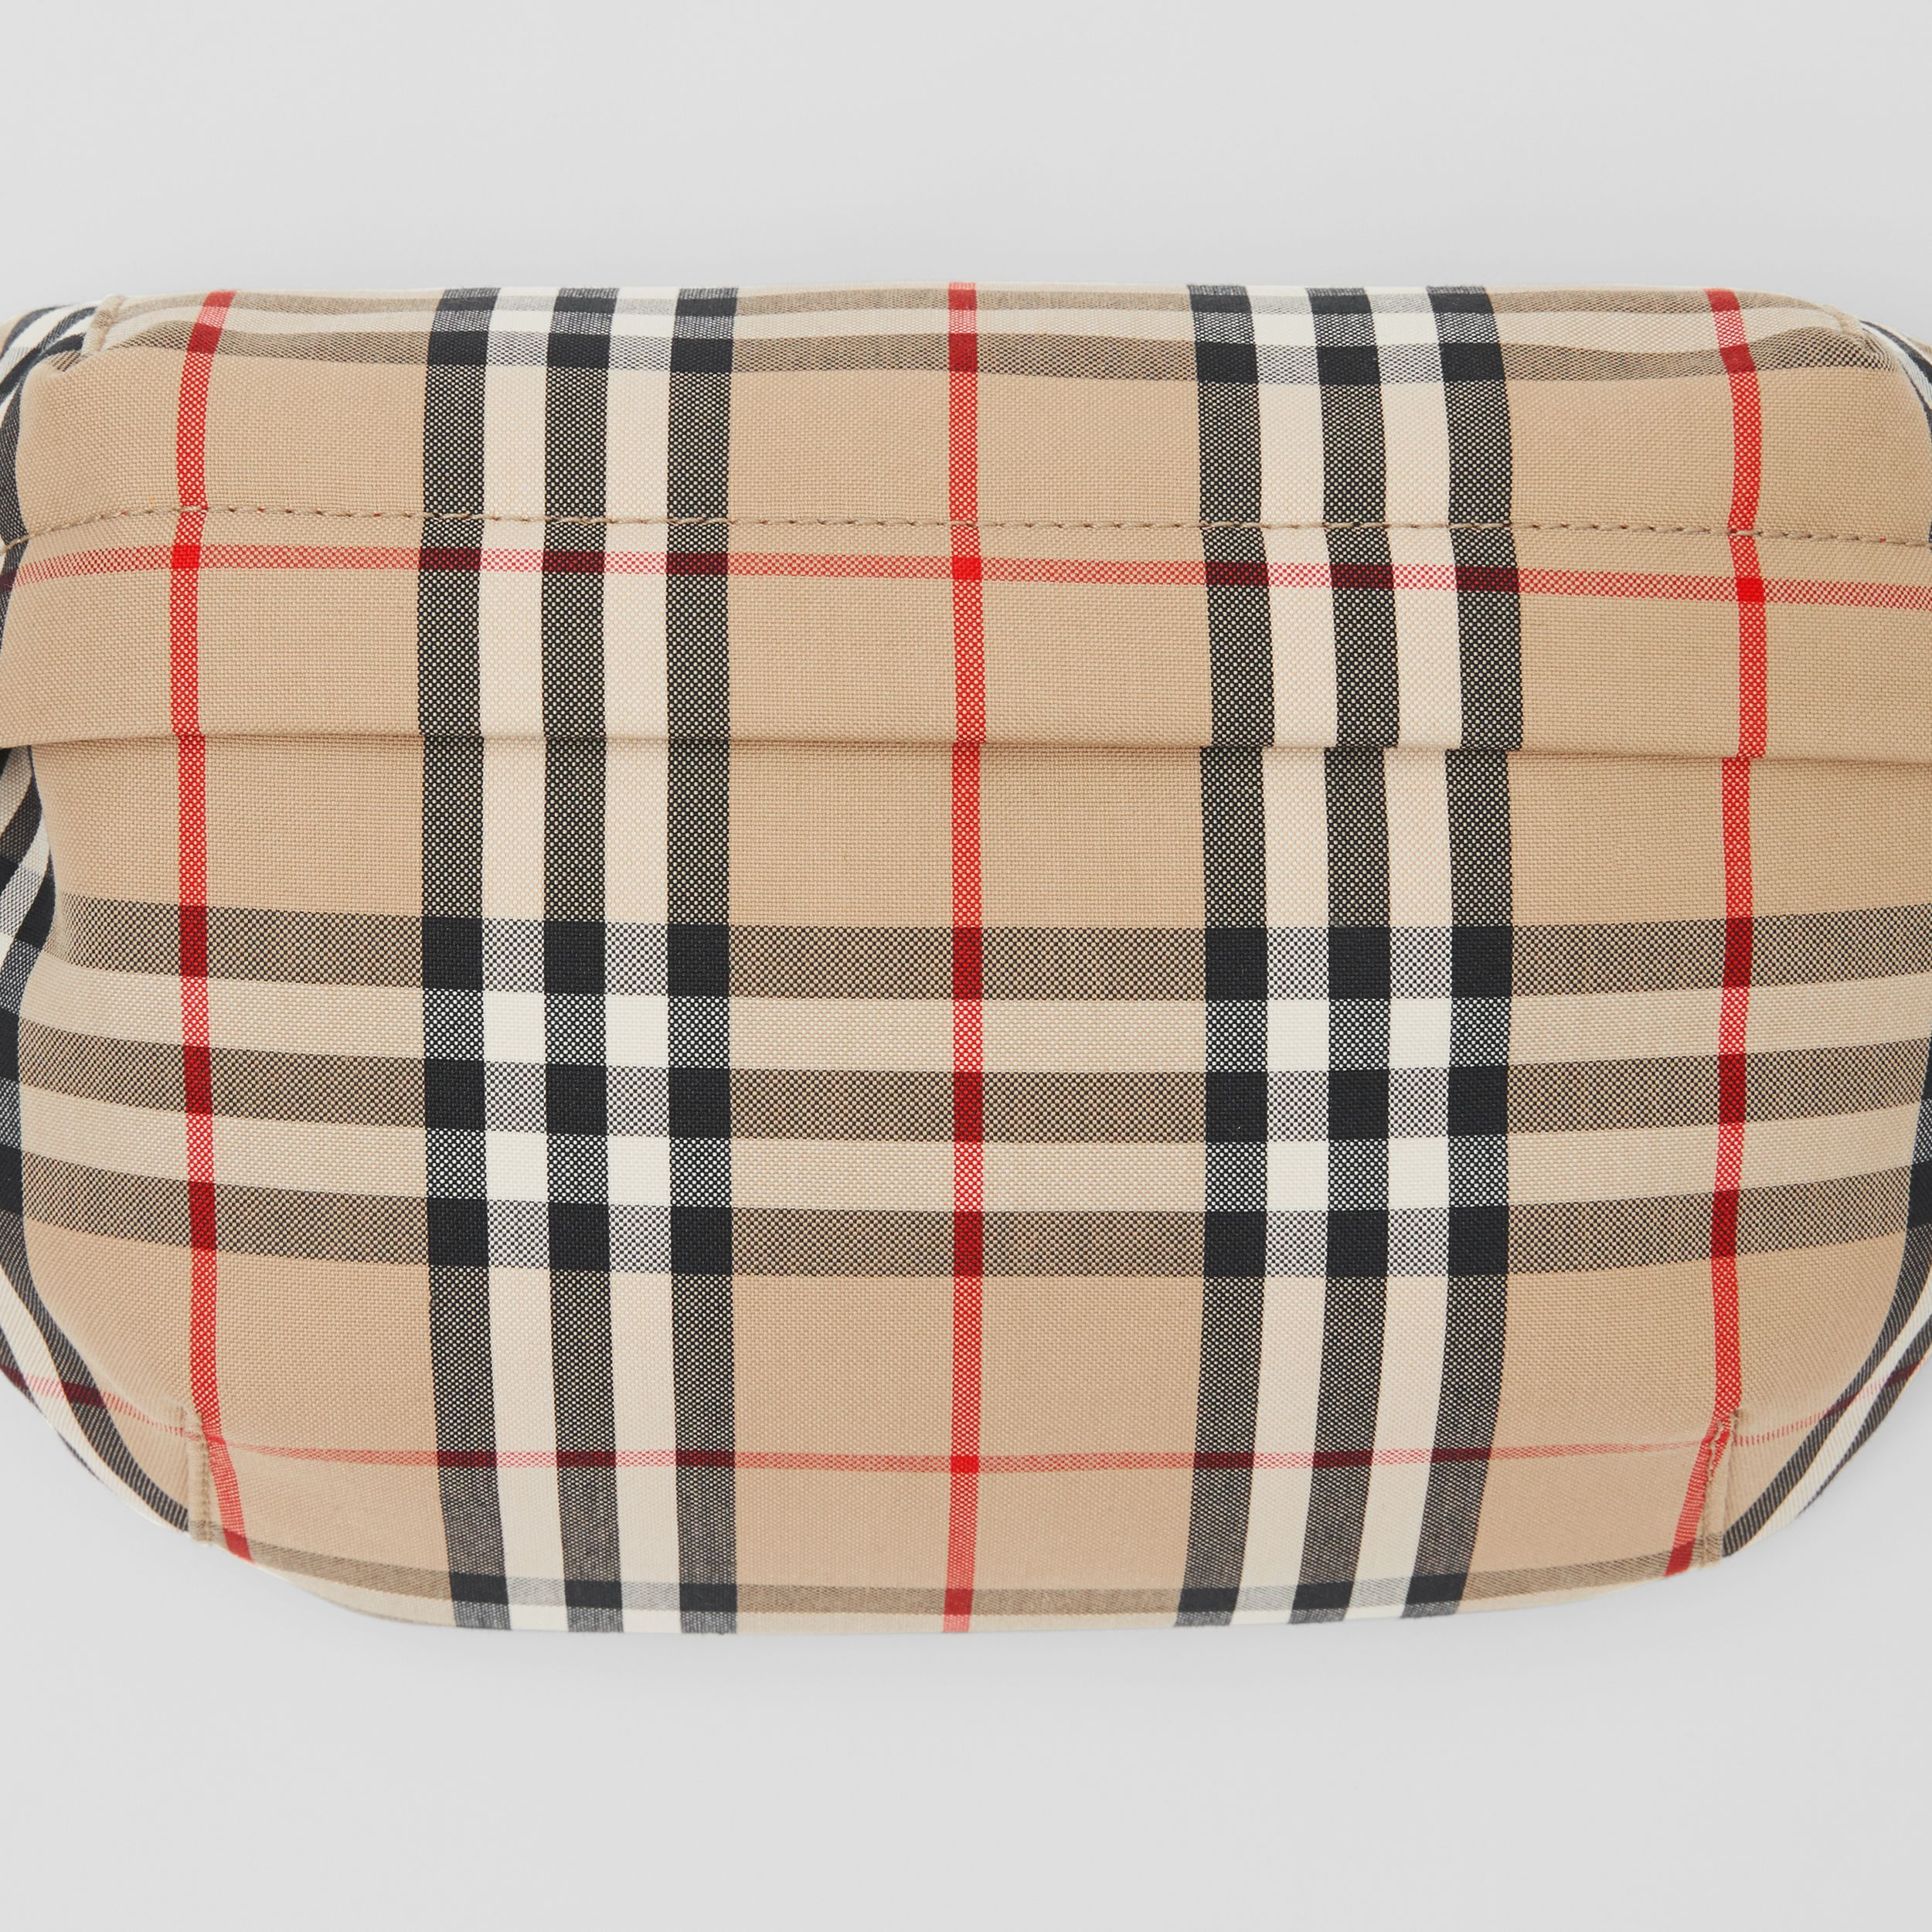 Medium Vintage Check Bonded Cotton Bum Bag in Archive Beige | Burberry - 2